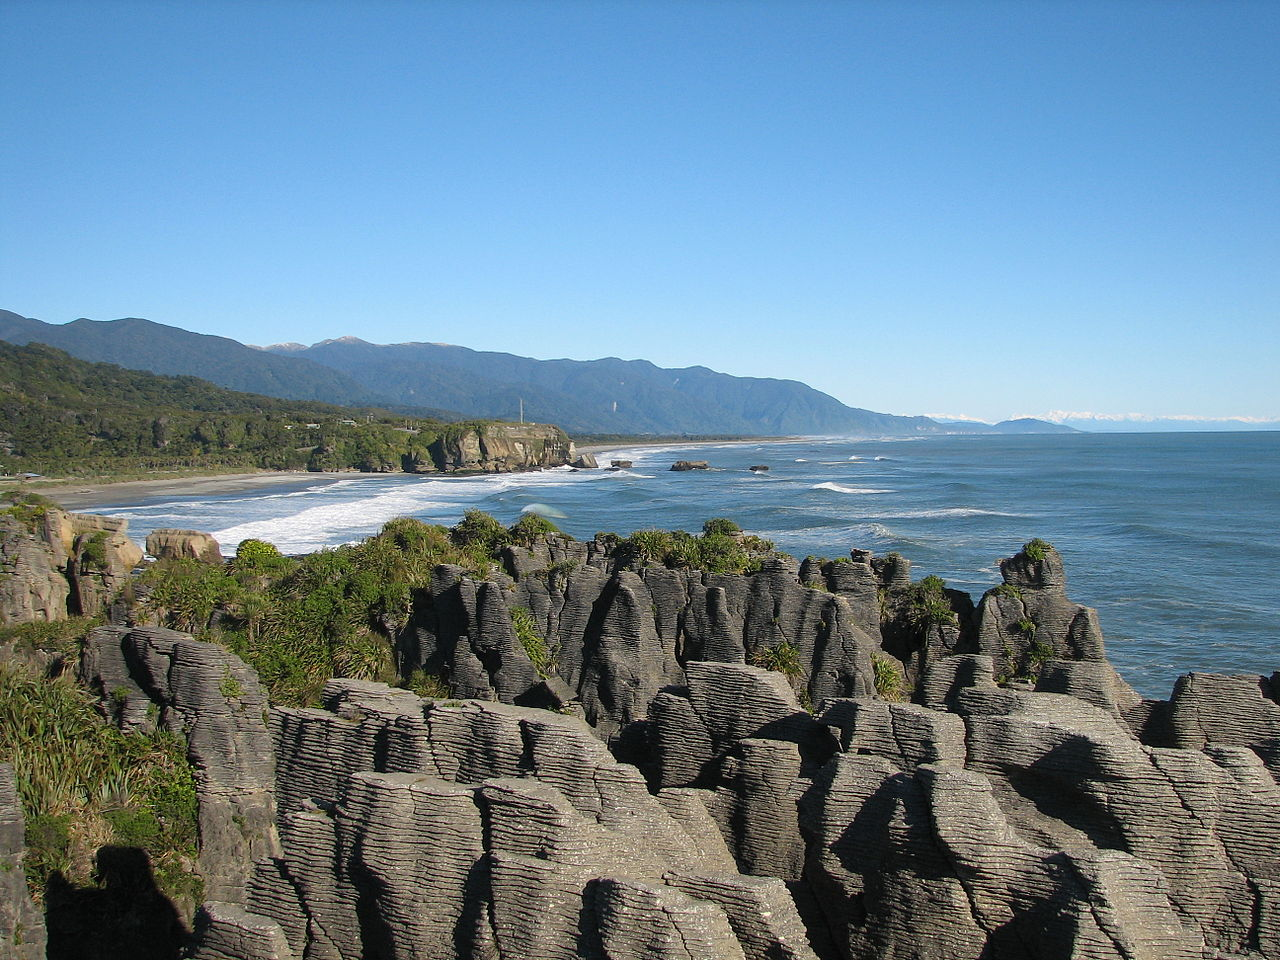 Punakaiki is one of the West Coast areas covered by the new MPAs